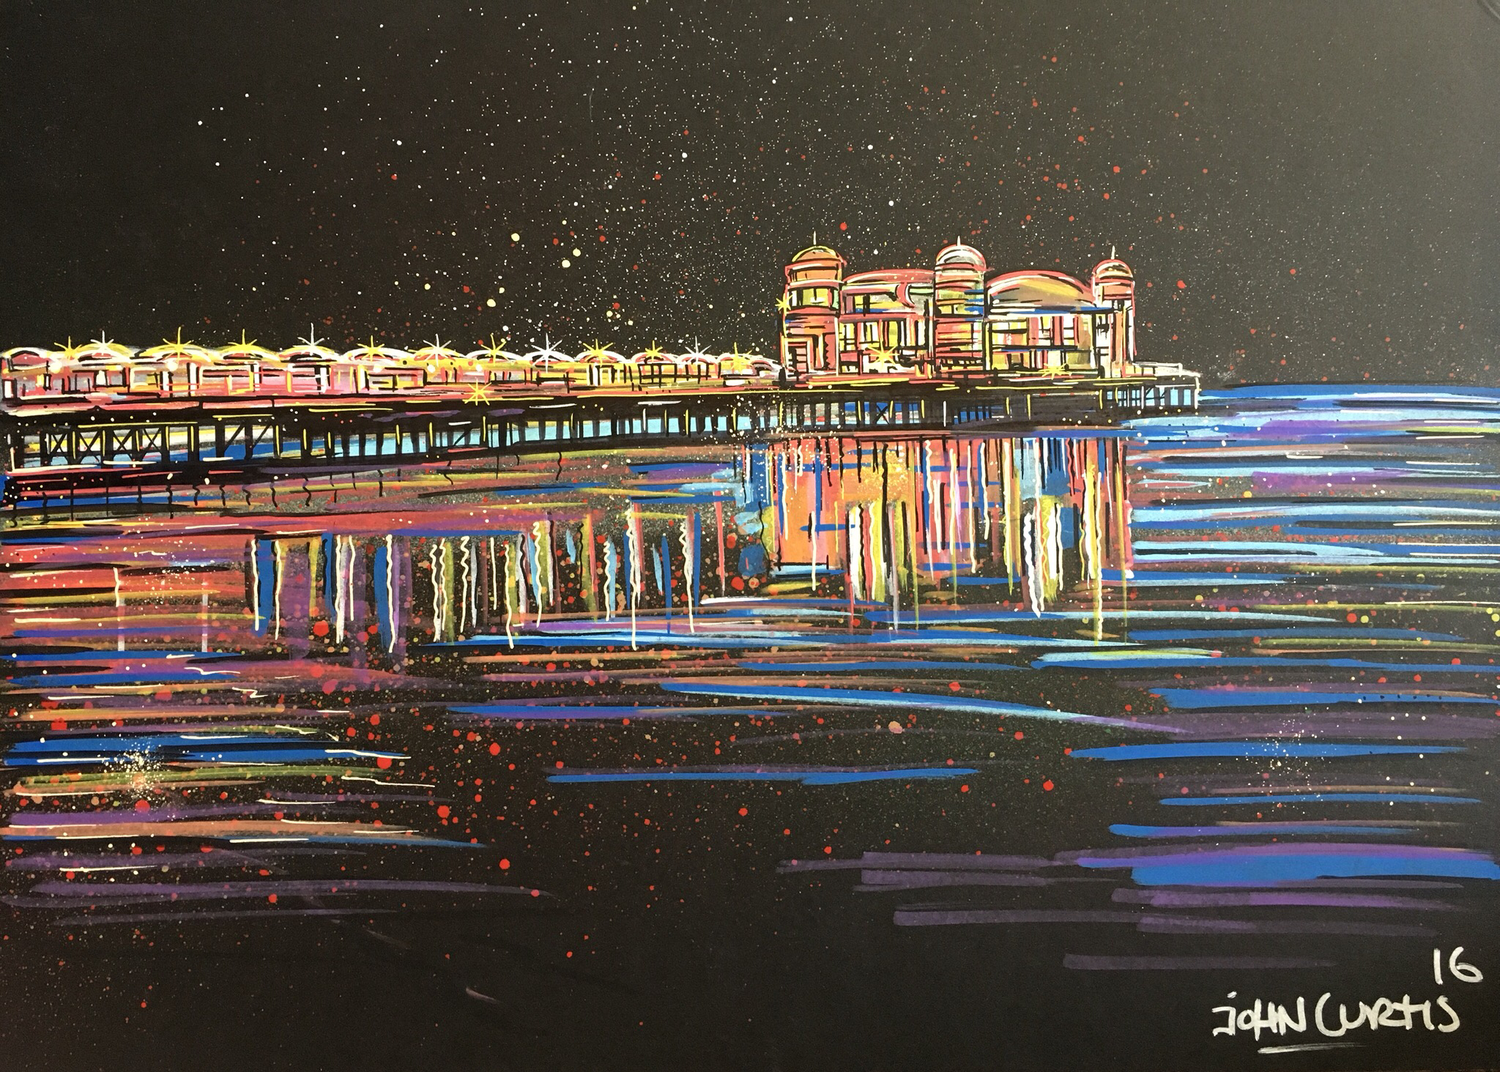 Weston Pier at Night - Original Painting